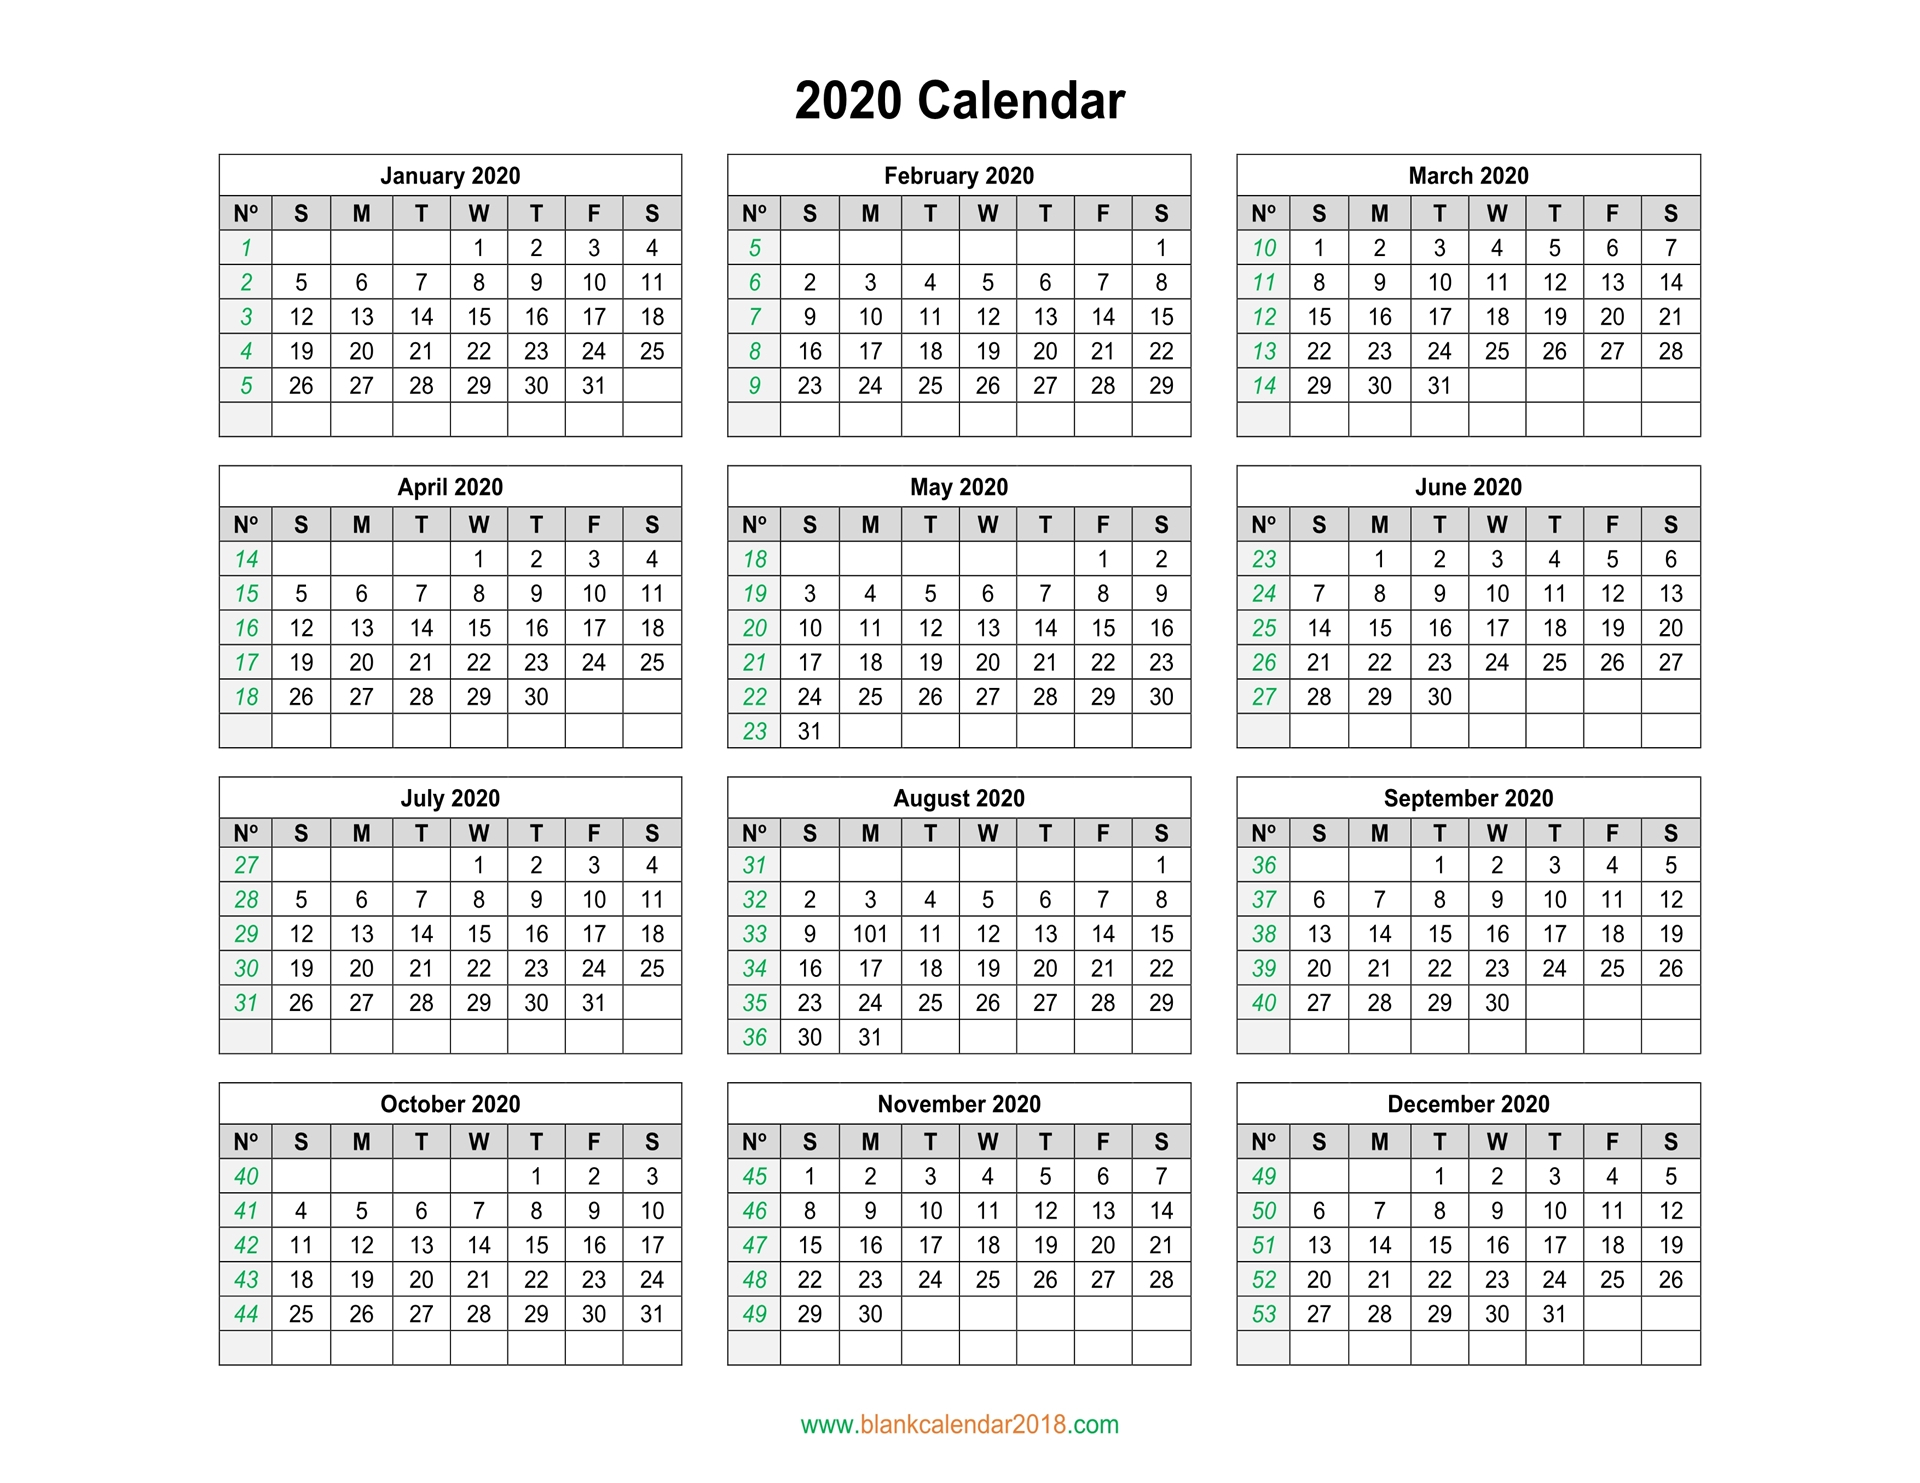 Blank Calendar 2020 inside 2020 Monthly Calinder With Week Numbers